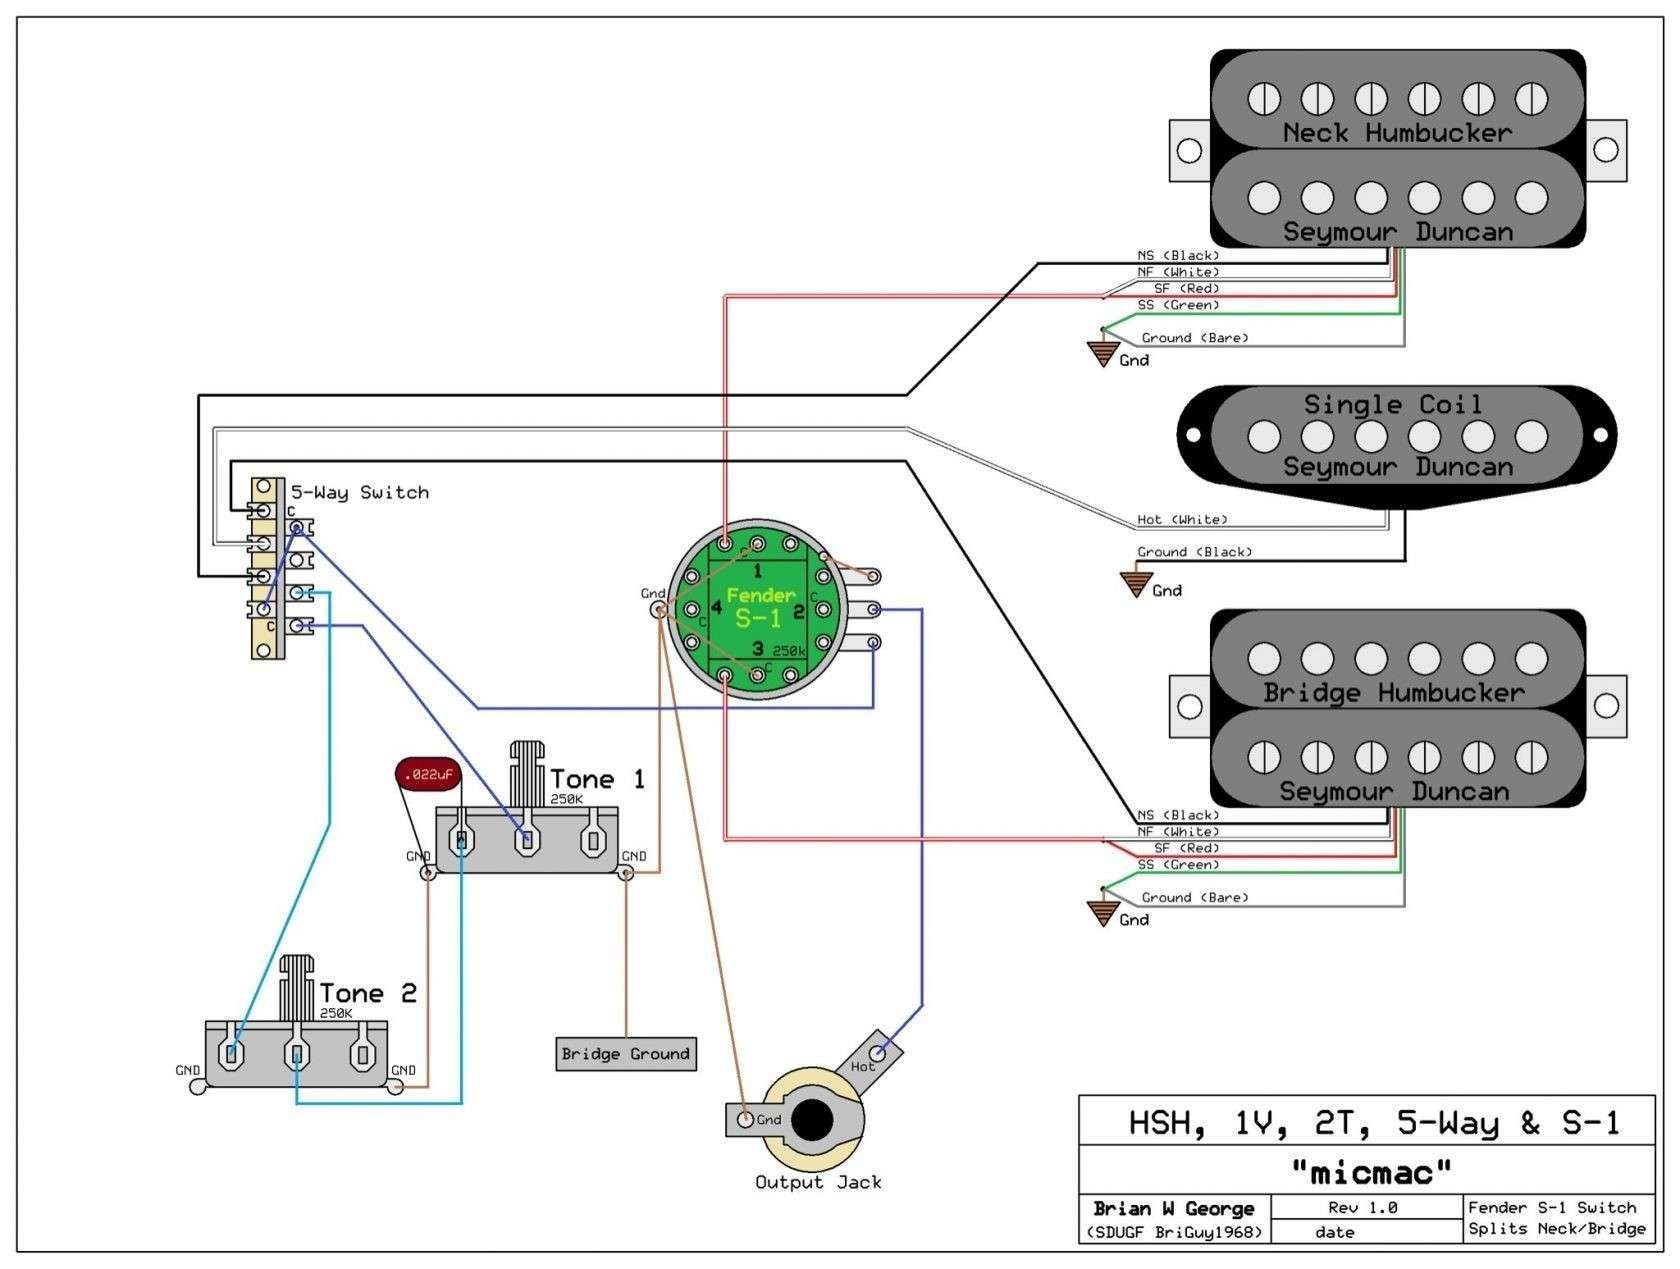 fender stratocaster tremolo wiring diagram ve 1795  diagram besides strat guitar wiring 3 way switch diagram  diagram besides strat guitar wiring 3